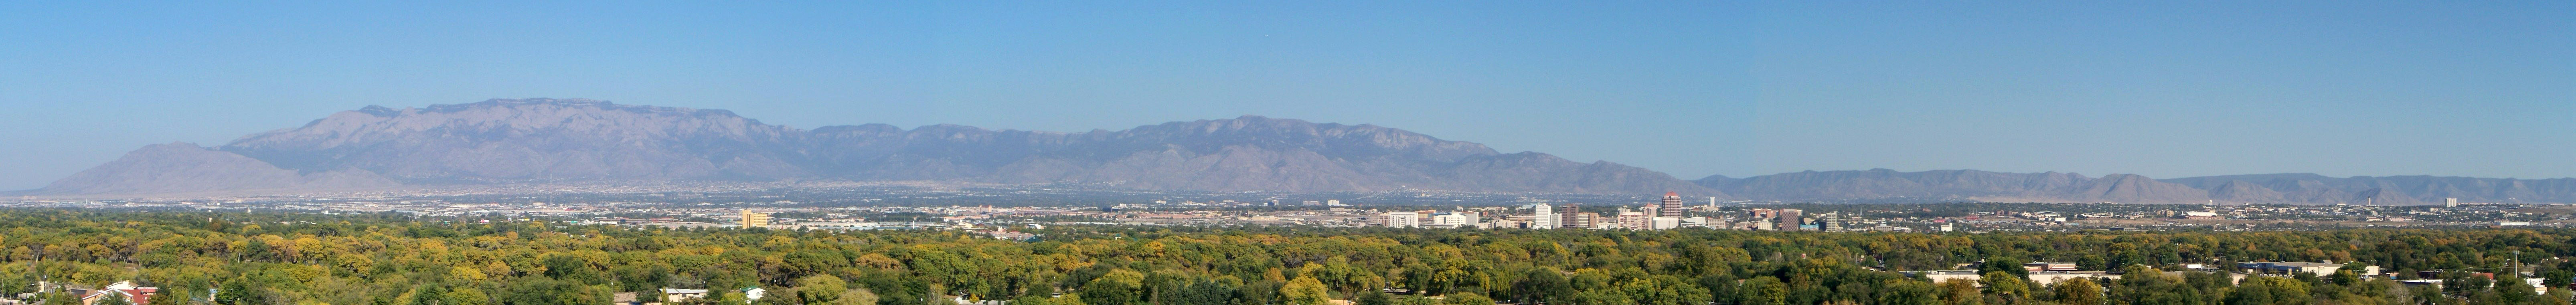 Panoramic View Of Albuquerque New Mexico Image Free